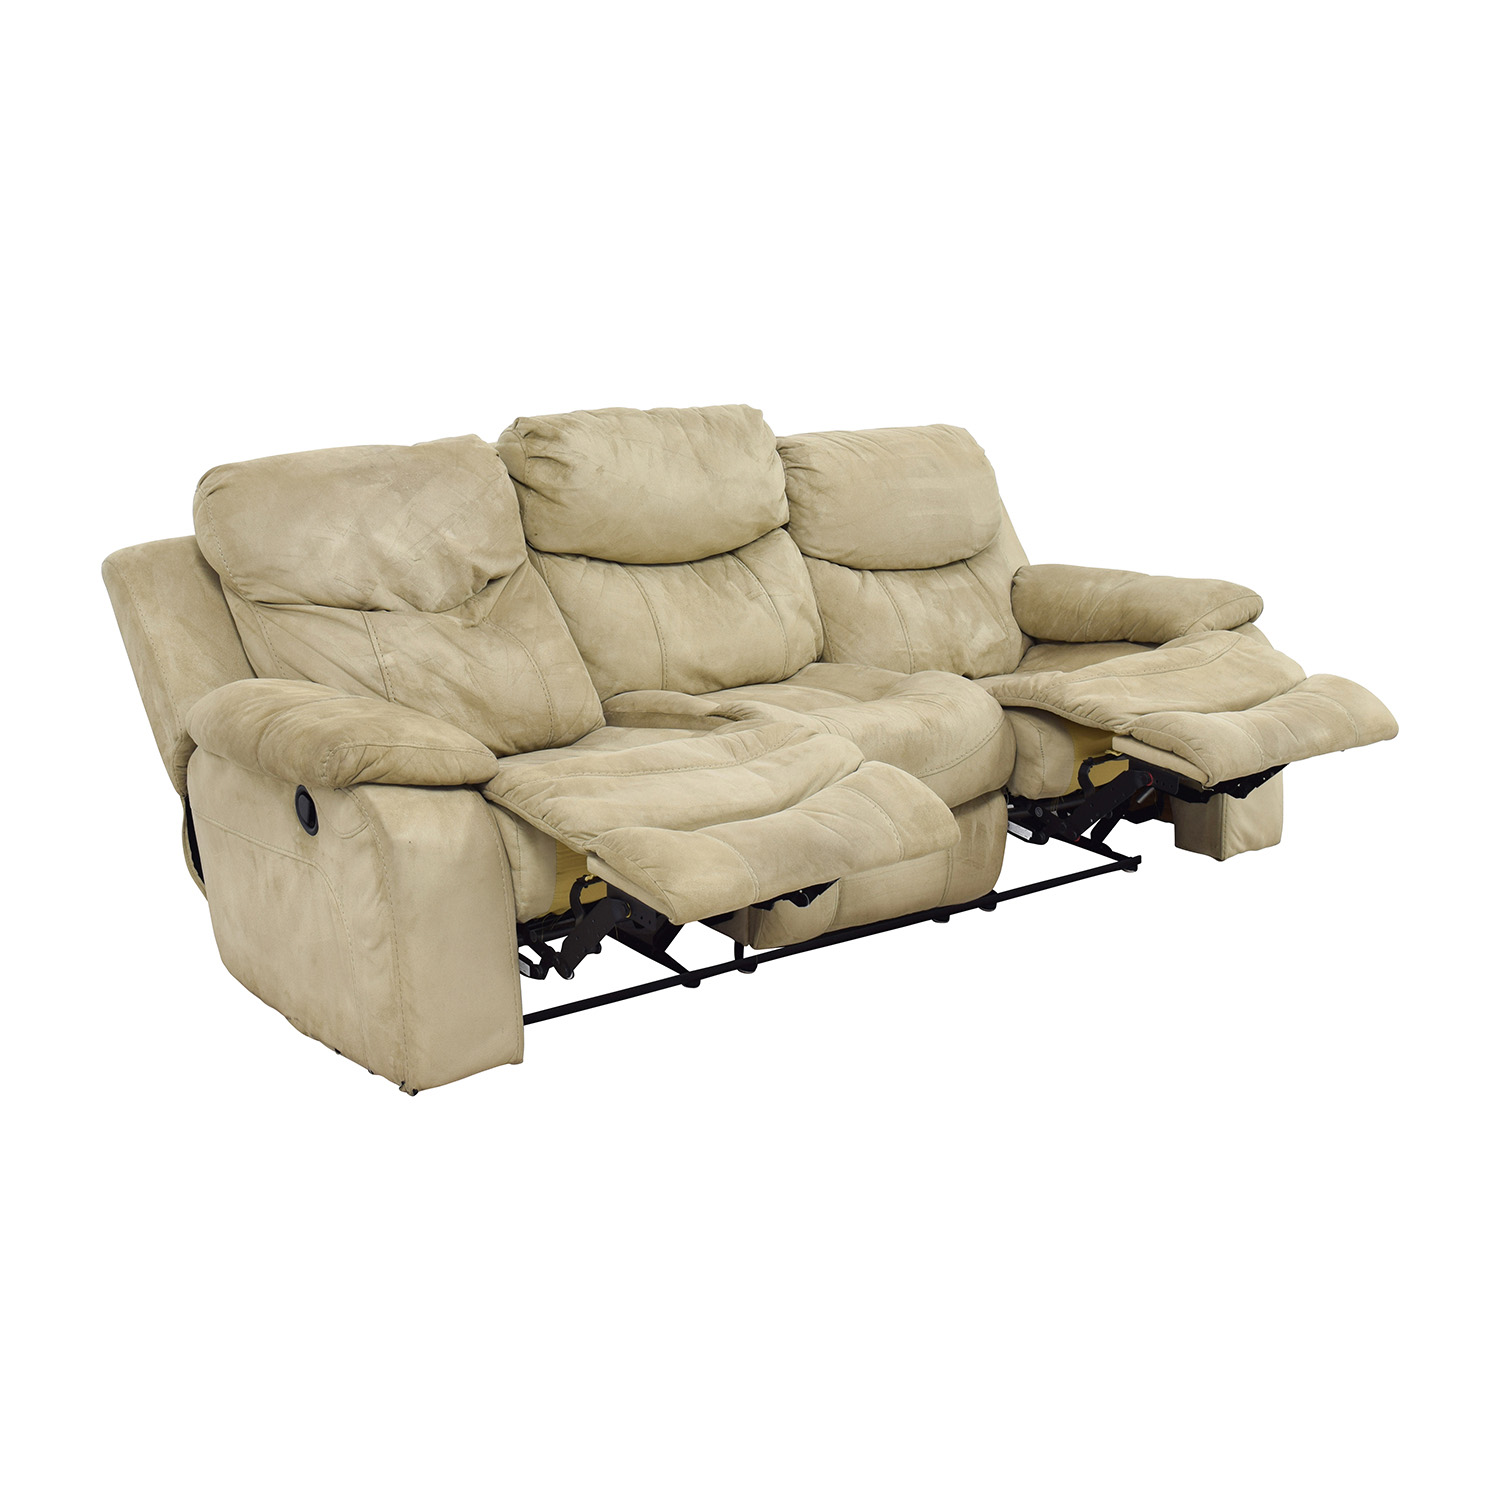 90 Off Bob S Furniture Bob S Furniture Beige Dual